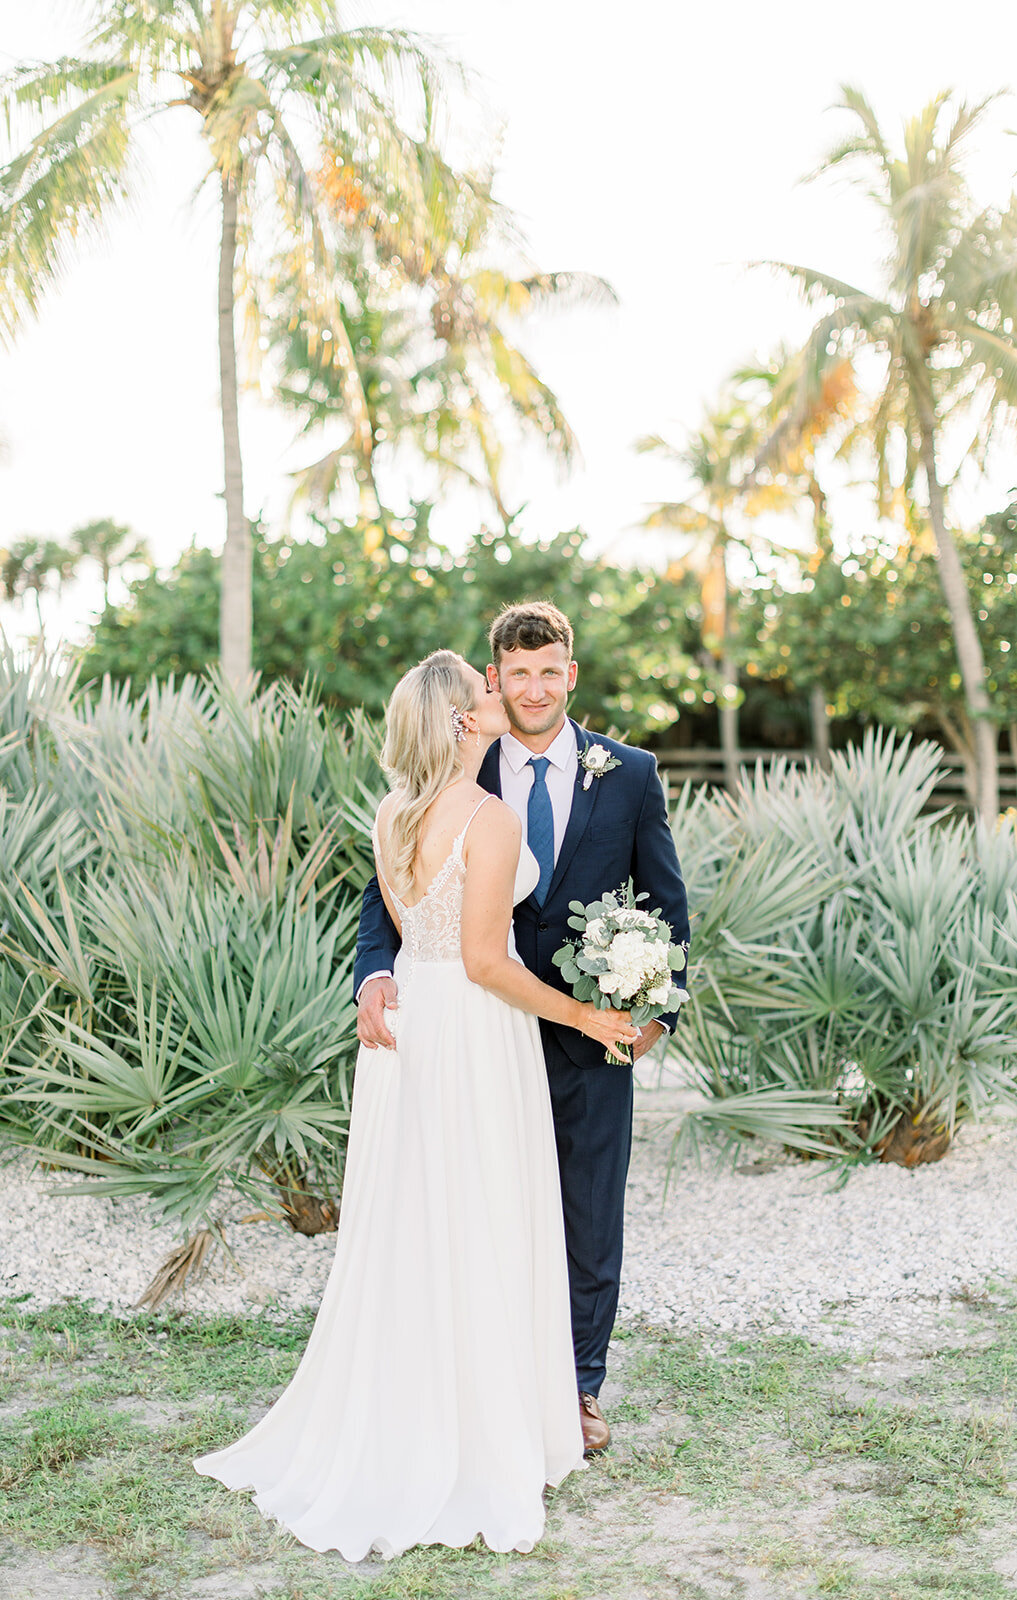 alex-mike-bowditch-beach-fort-myers-wedding-photos-1136